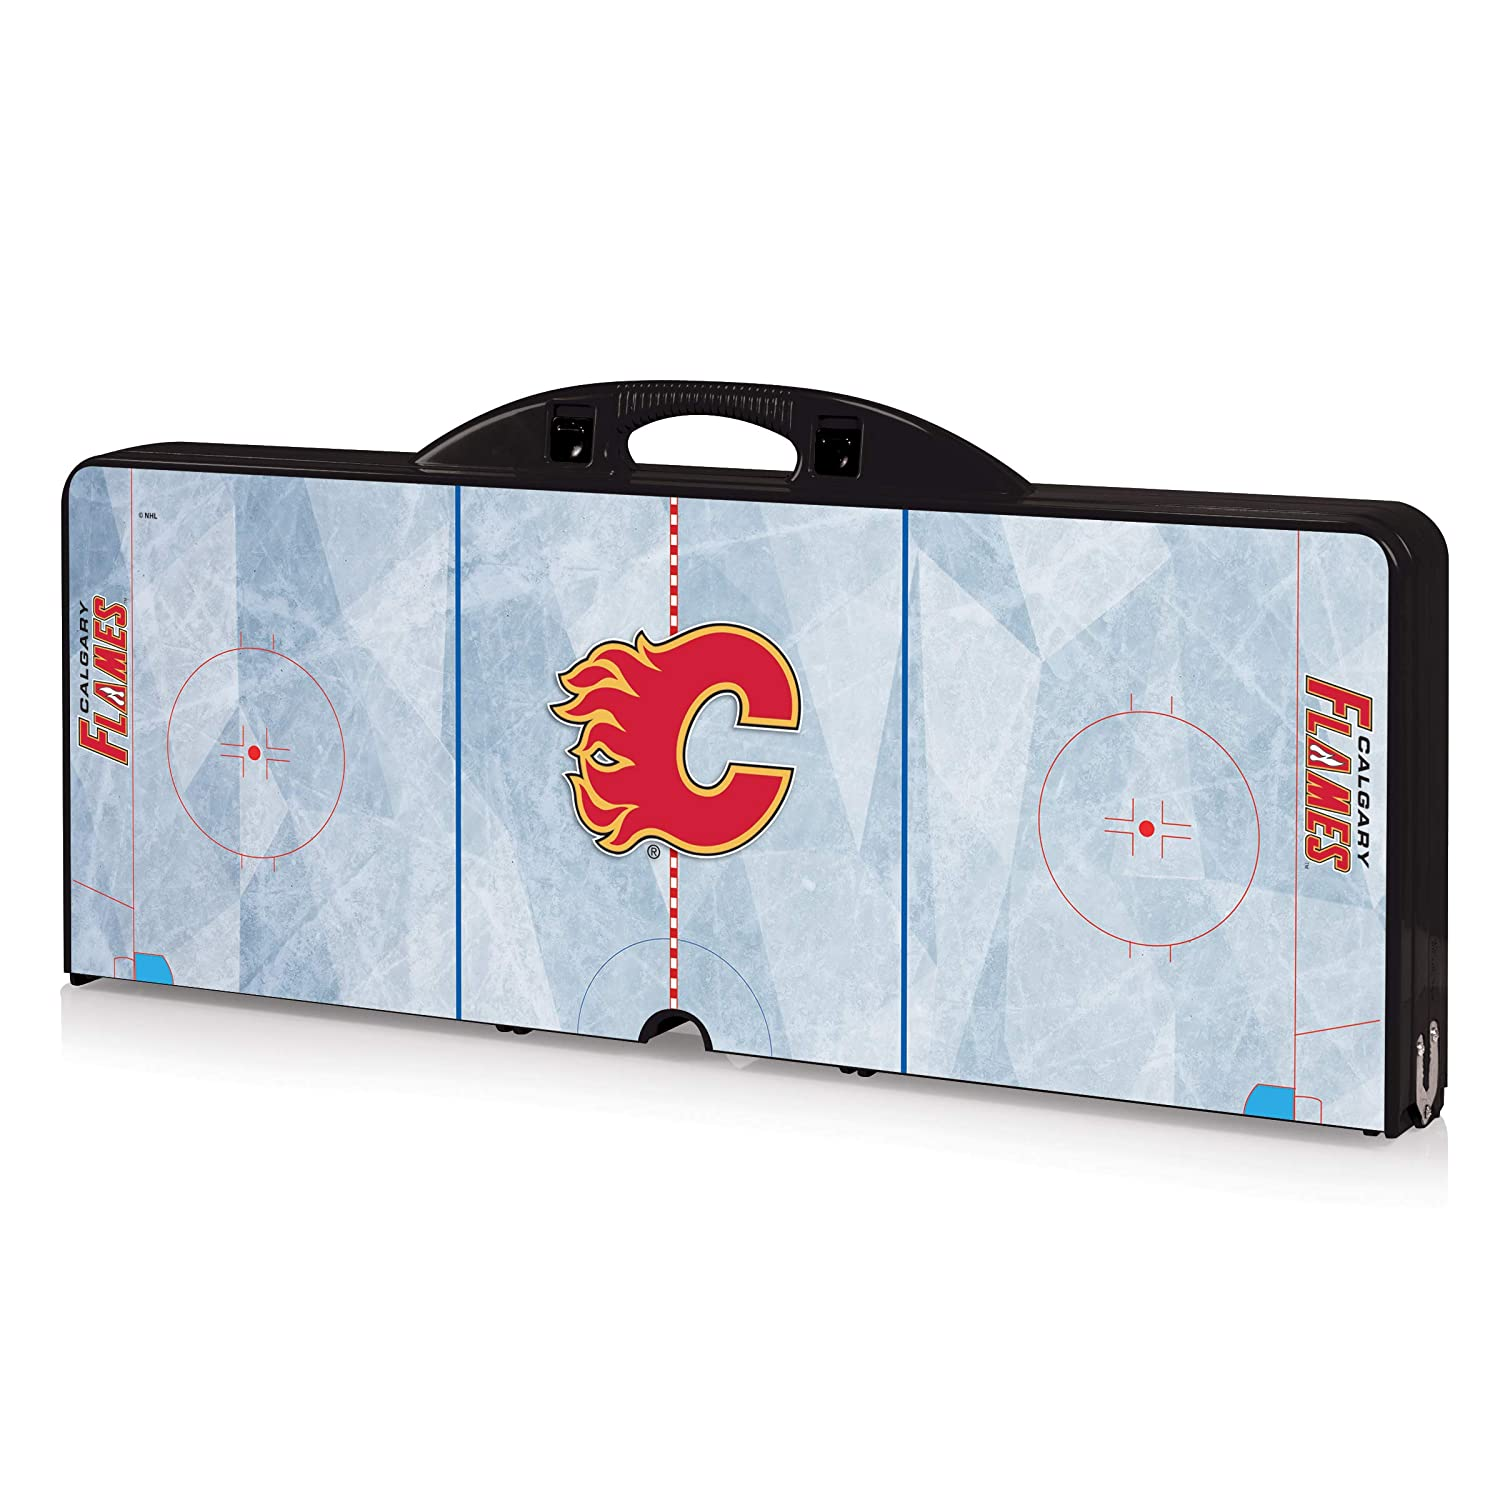 NHL Calgary Flames Portable Folding Picnic Table with Seating for 4